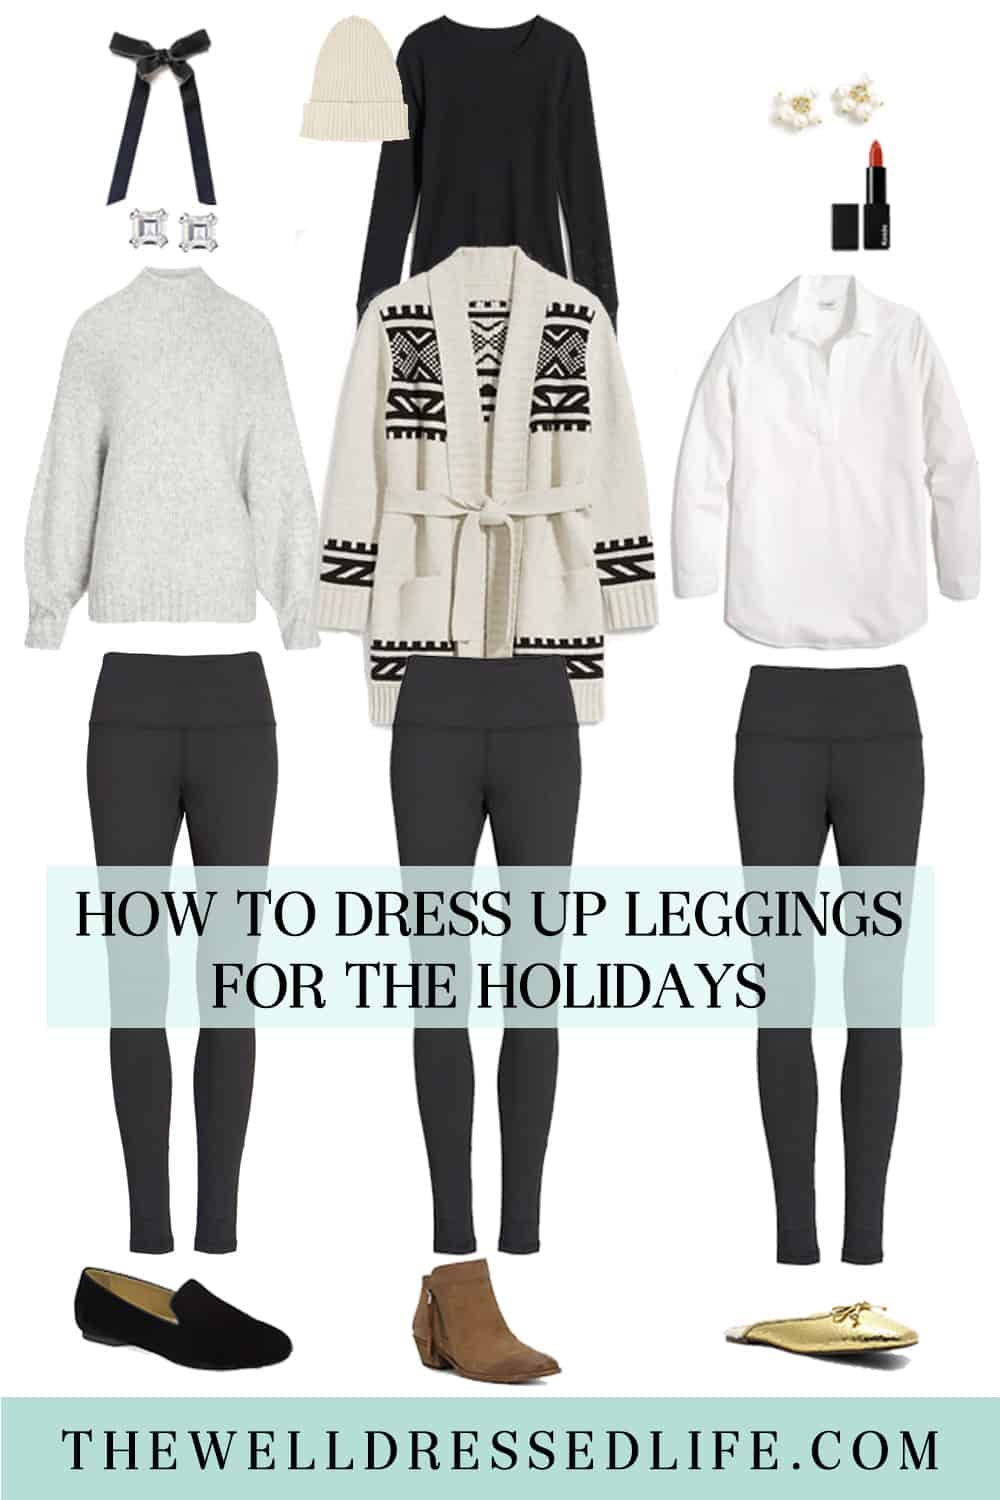 How to Dress Up Leggings for the Holidays